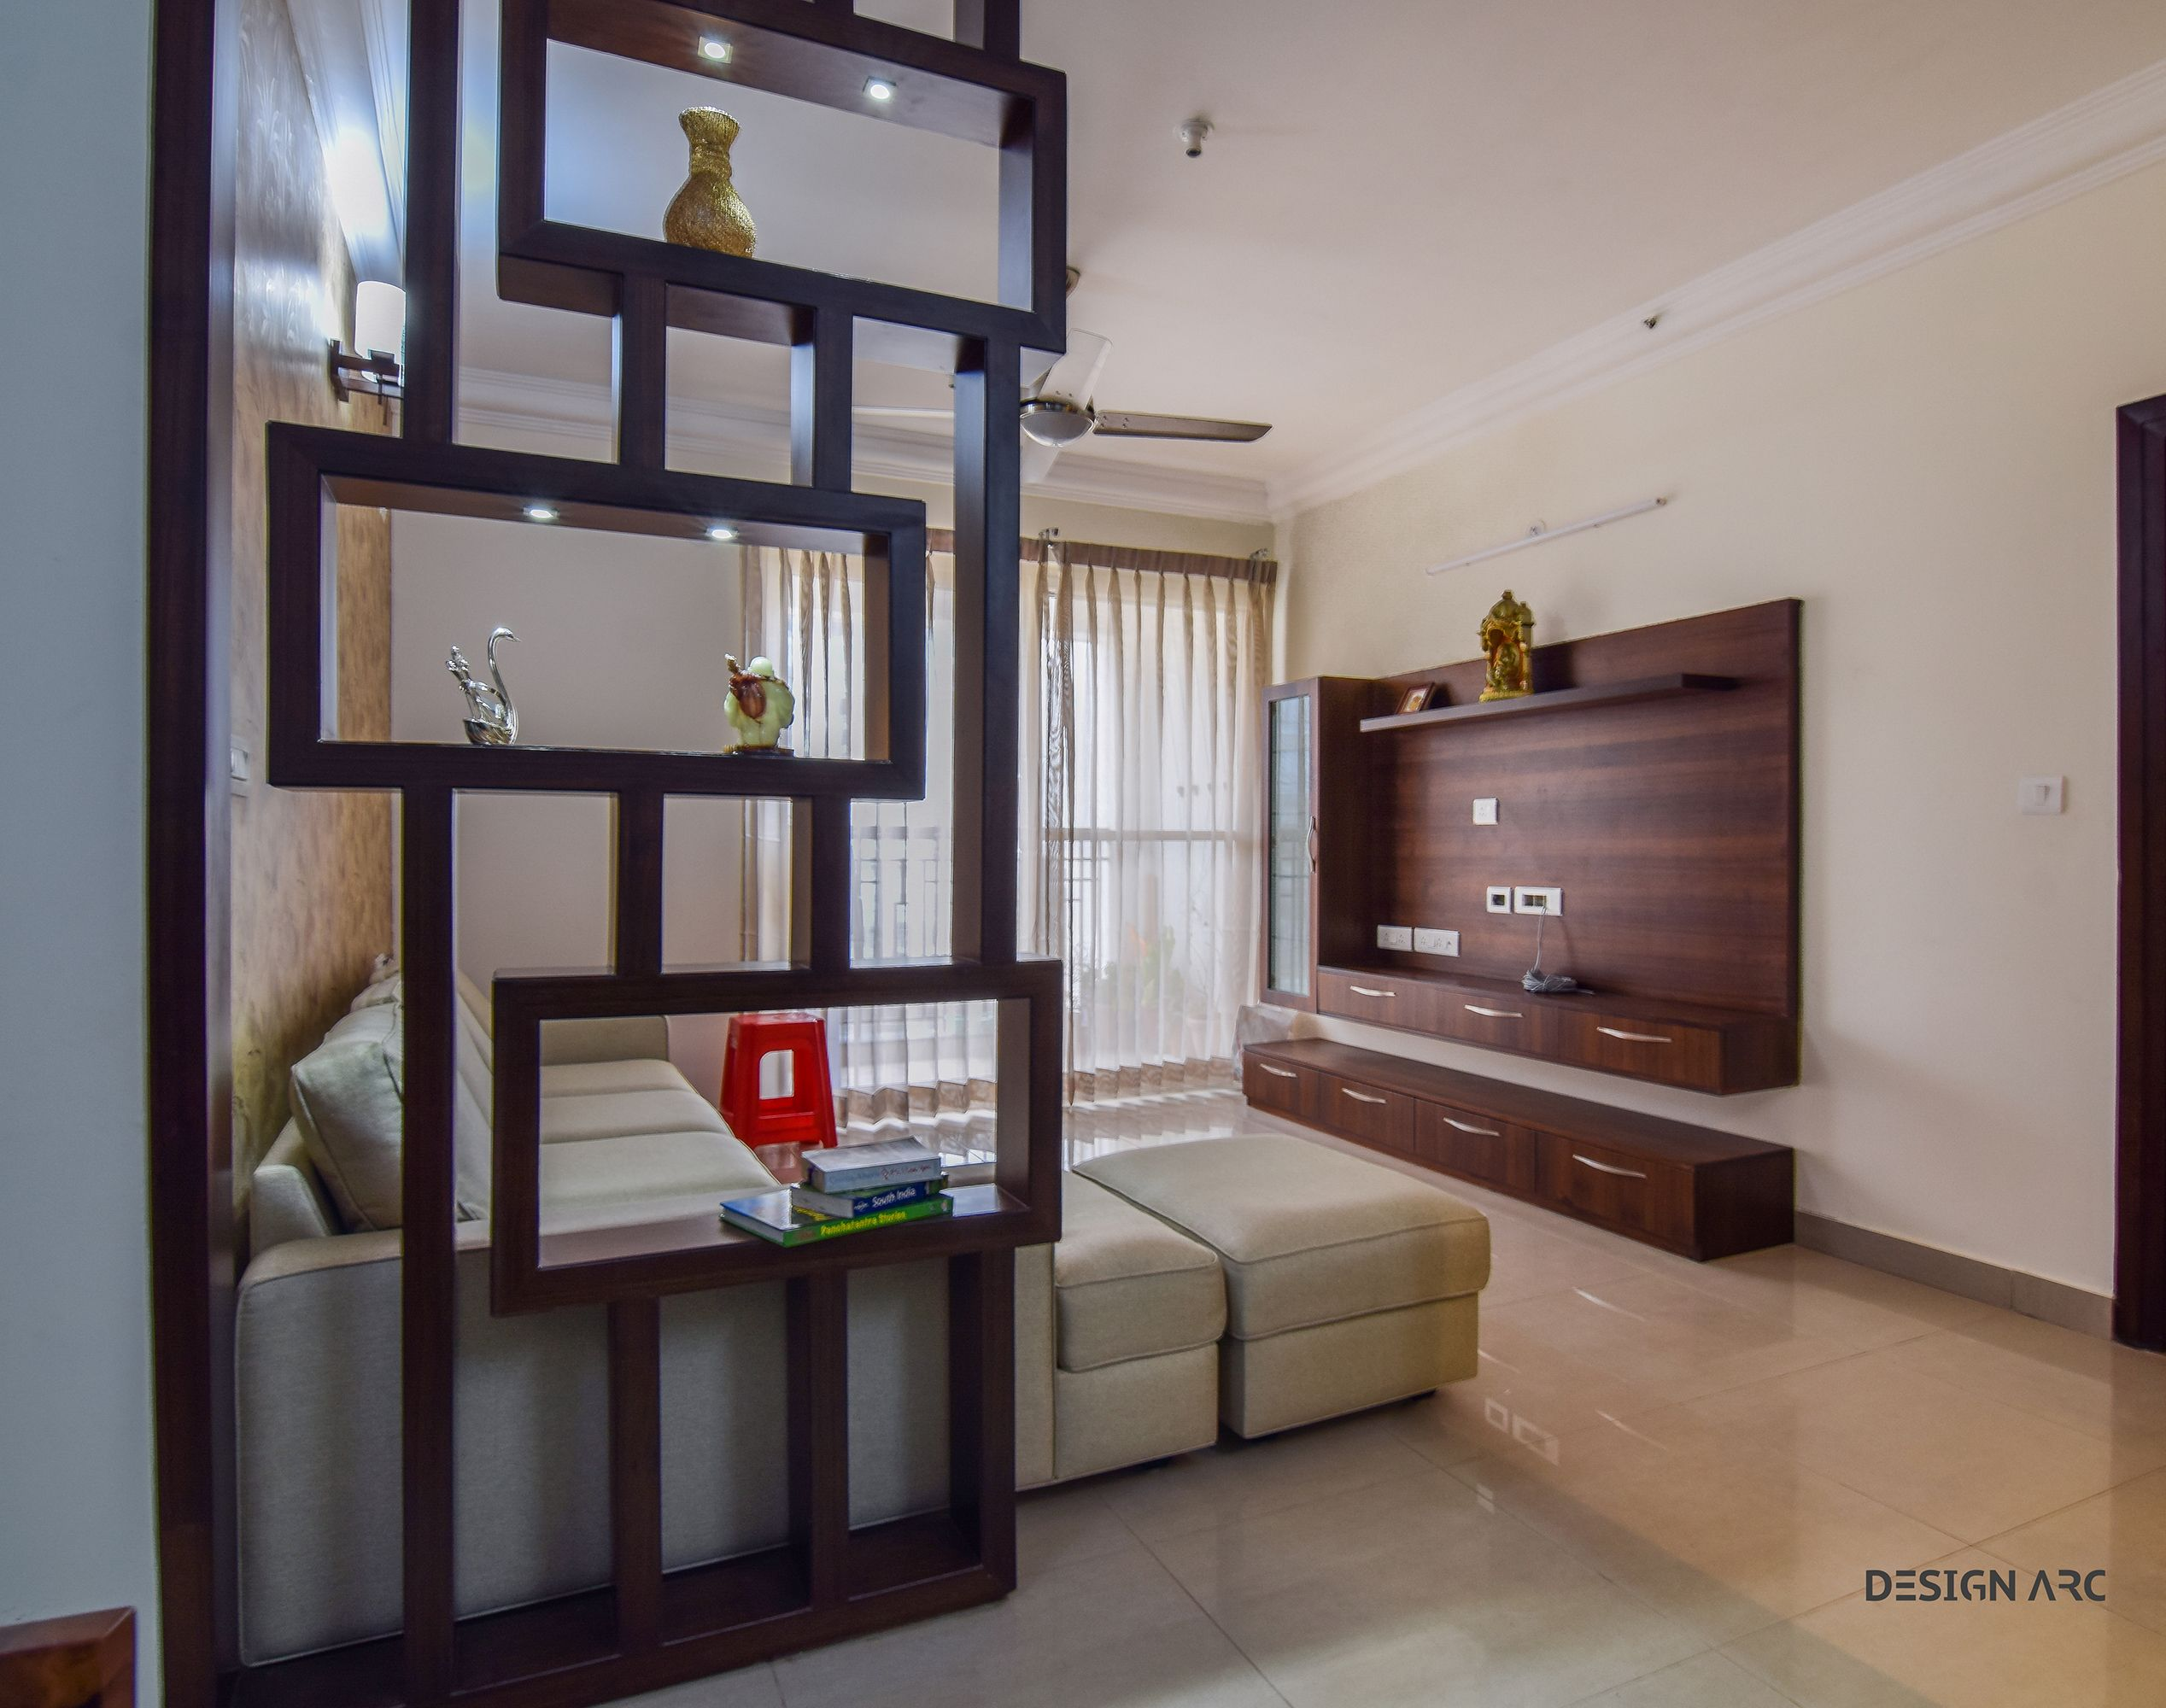 Interior design bangalore tv unit design concept living for Interior design for living room and bedroom